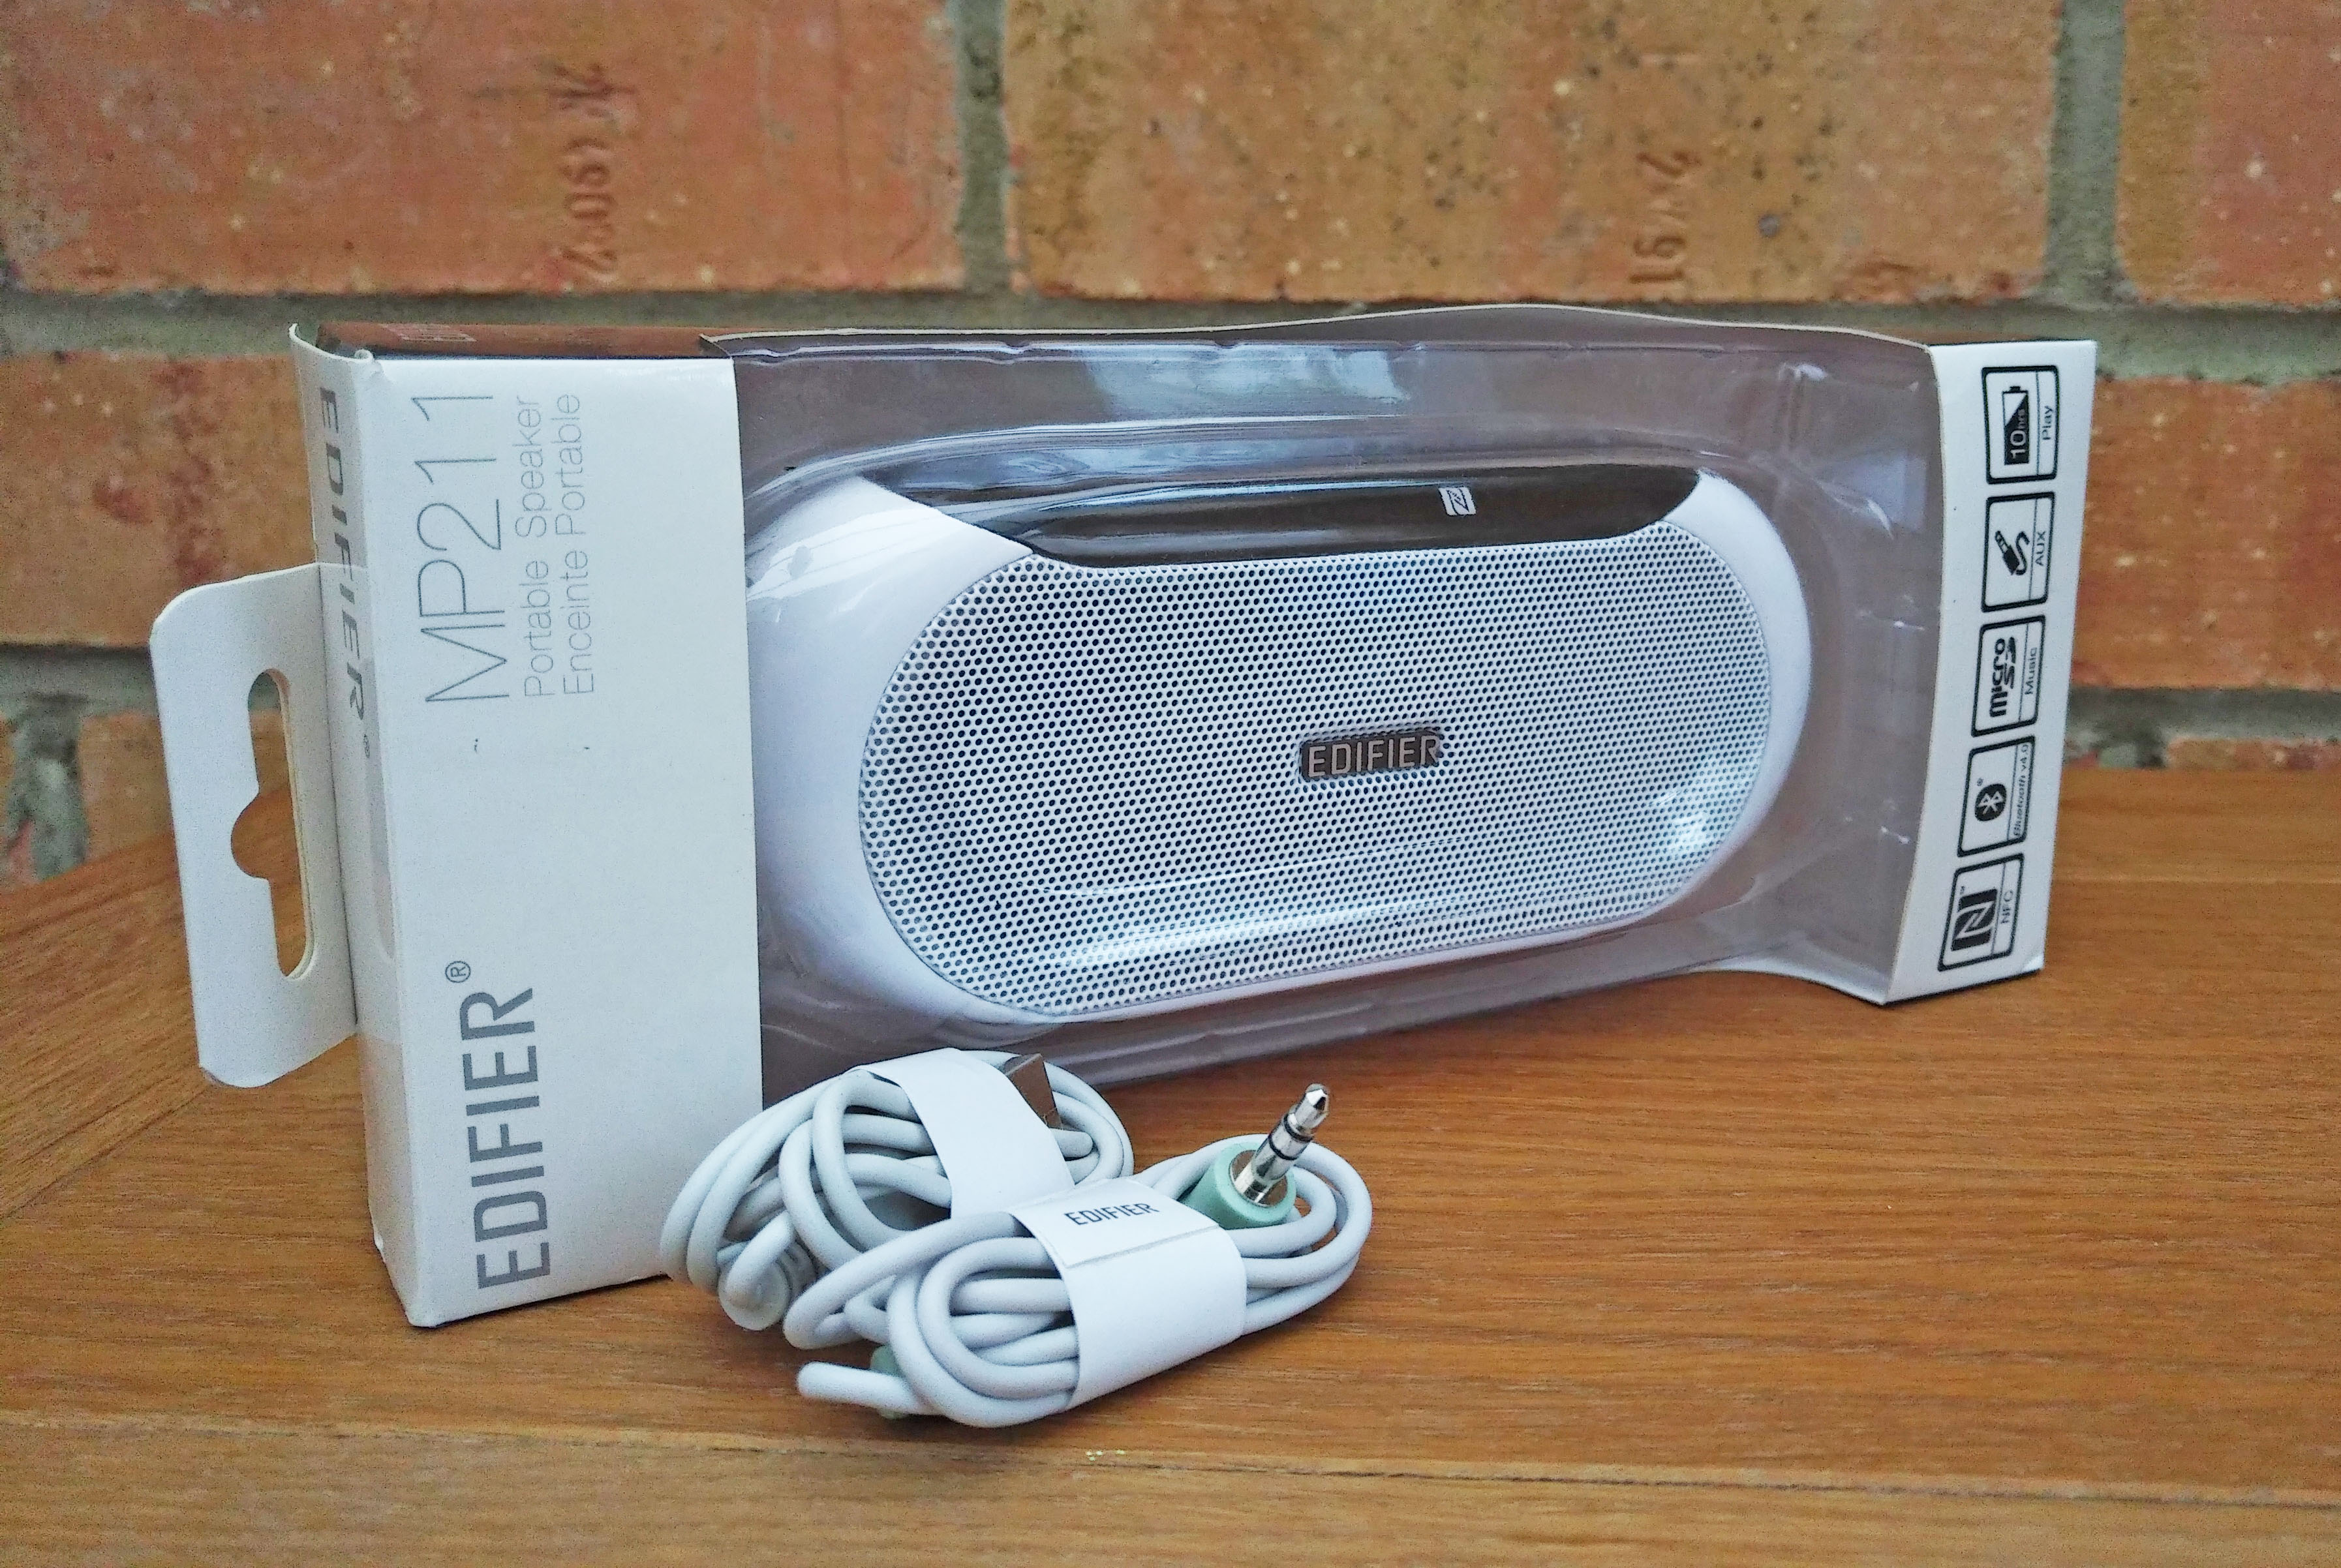 Sterep reviews, wireless speaker review, Edifier, Edifier MP211, dad blog uk, dadbloguk.com, school run dad